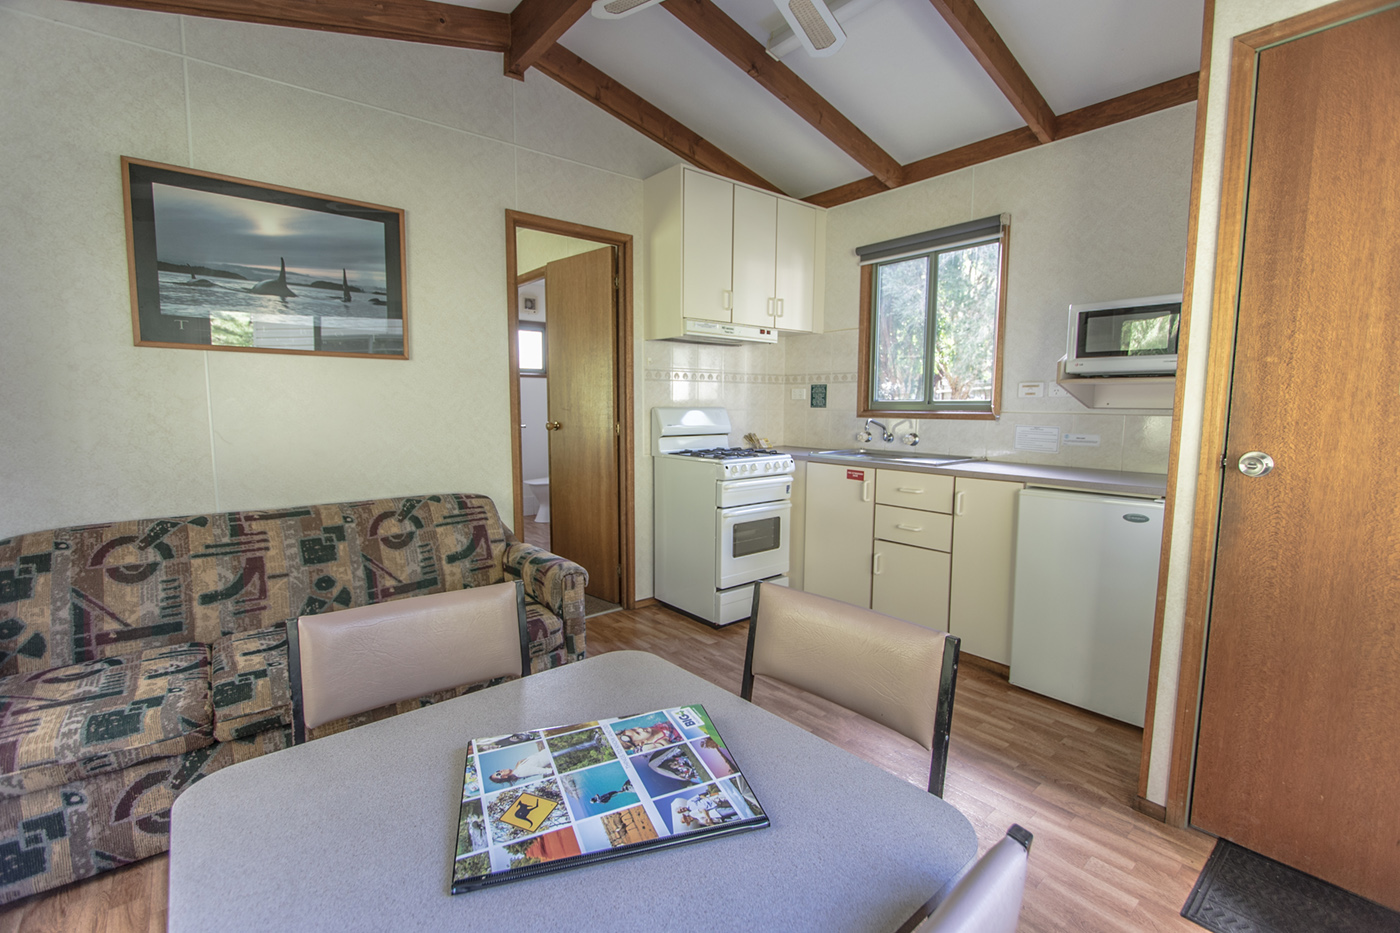 1-bed-holiday-unit-02.jpg